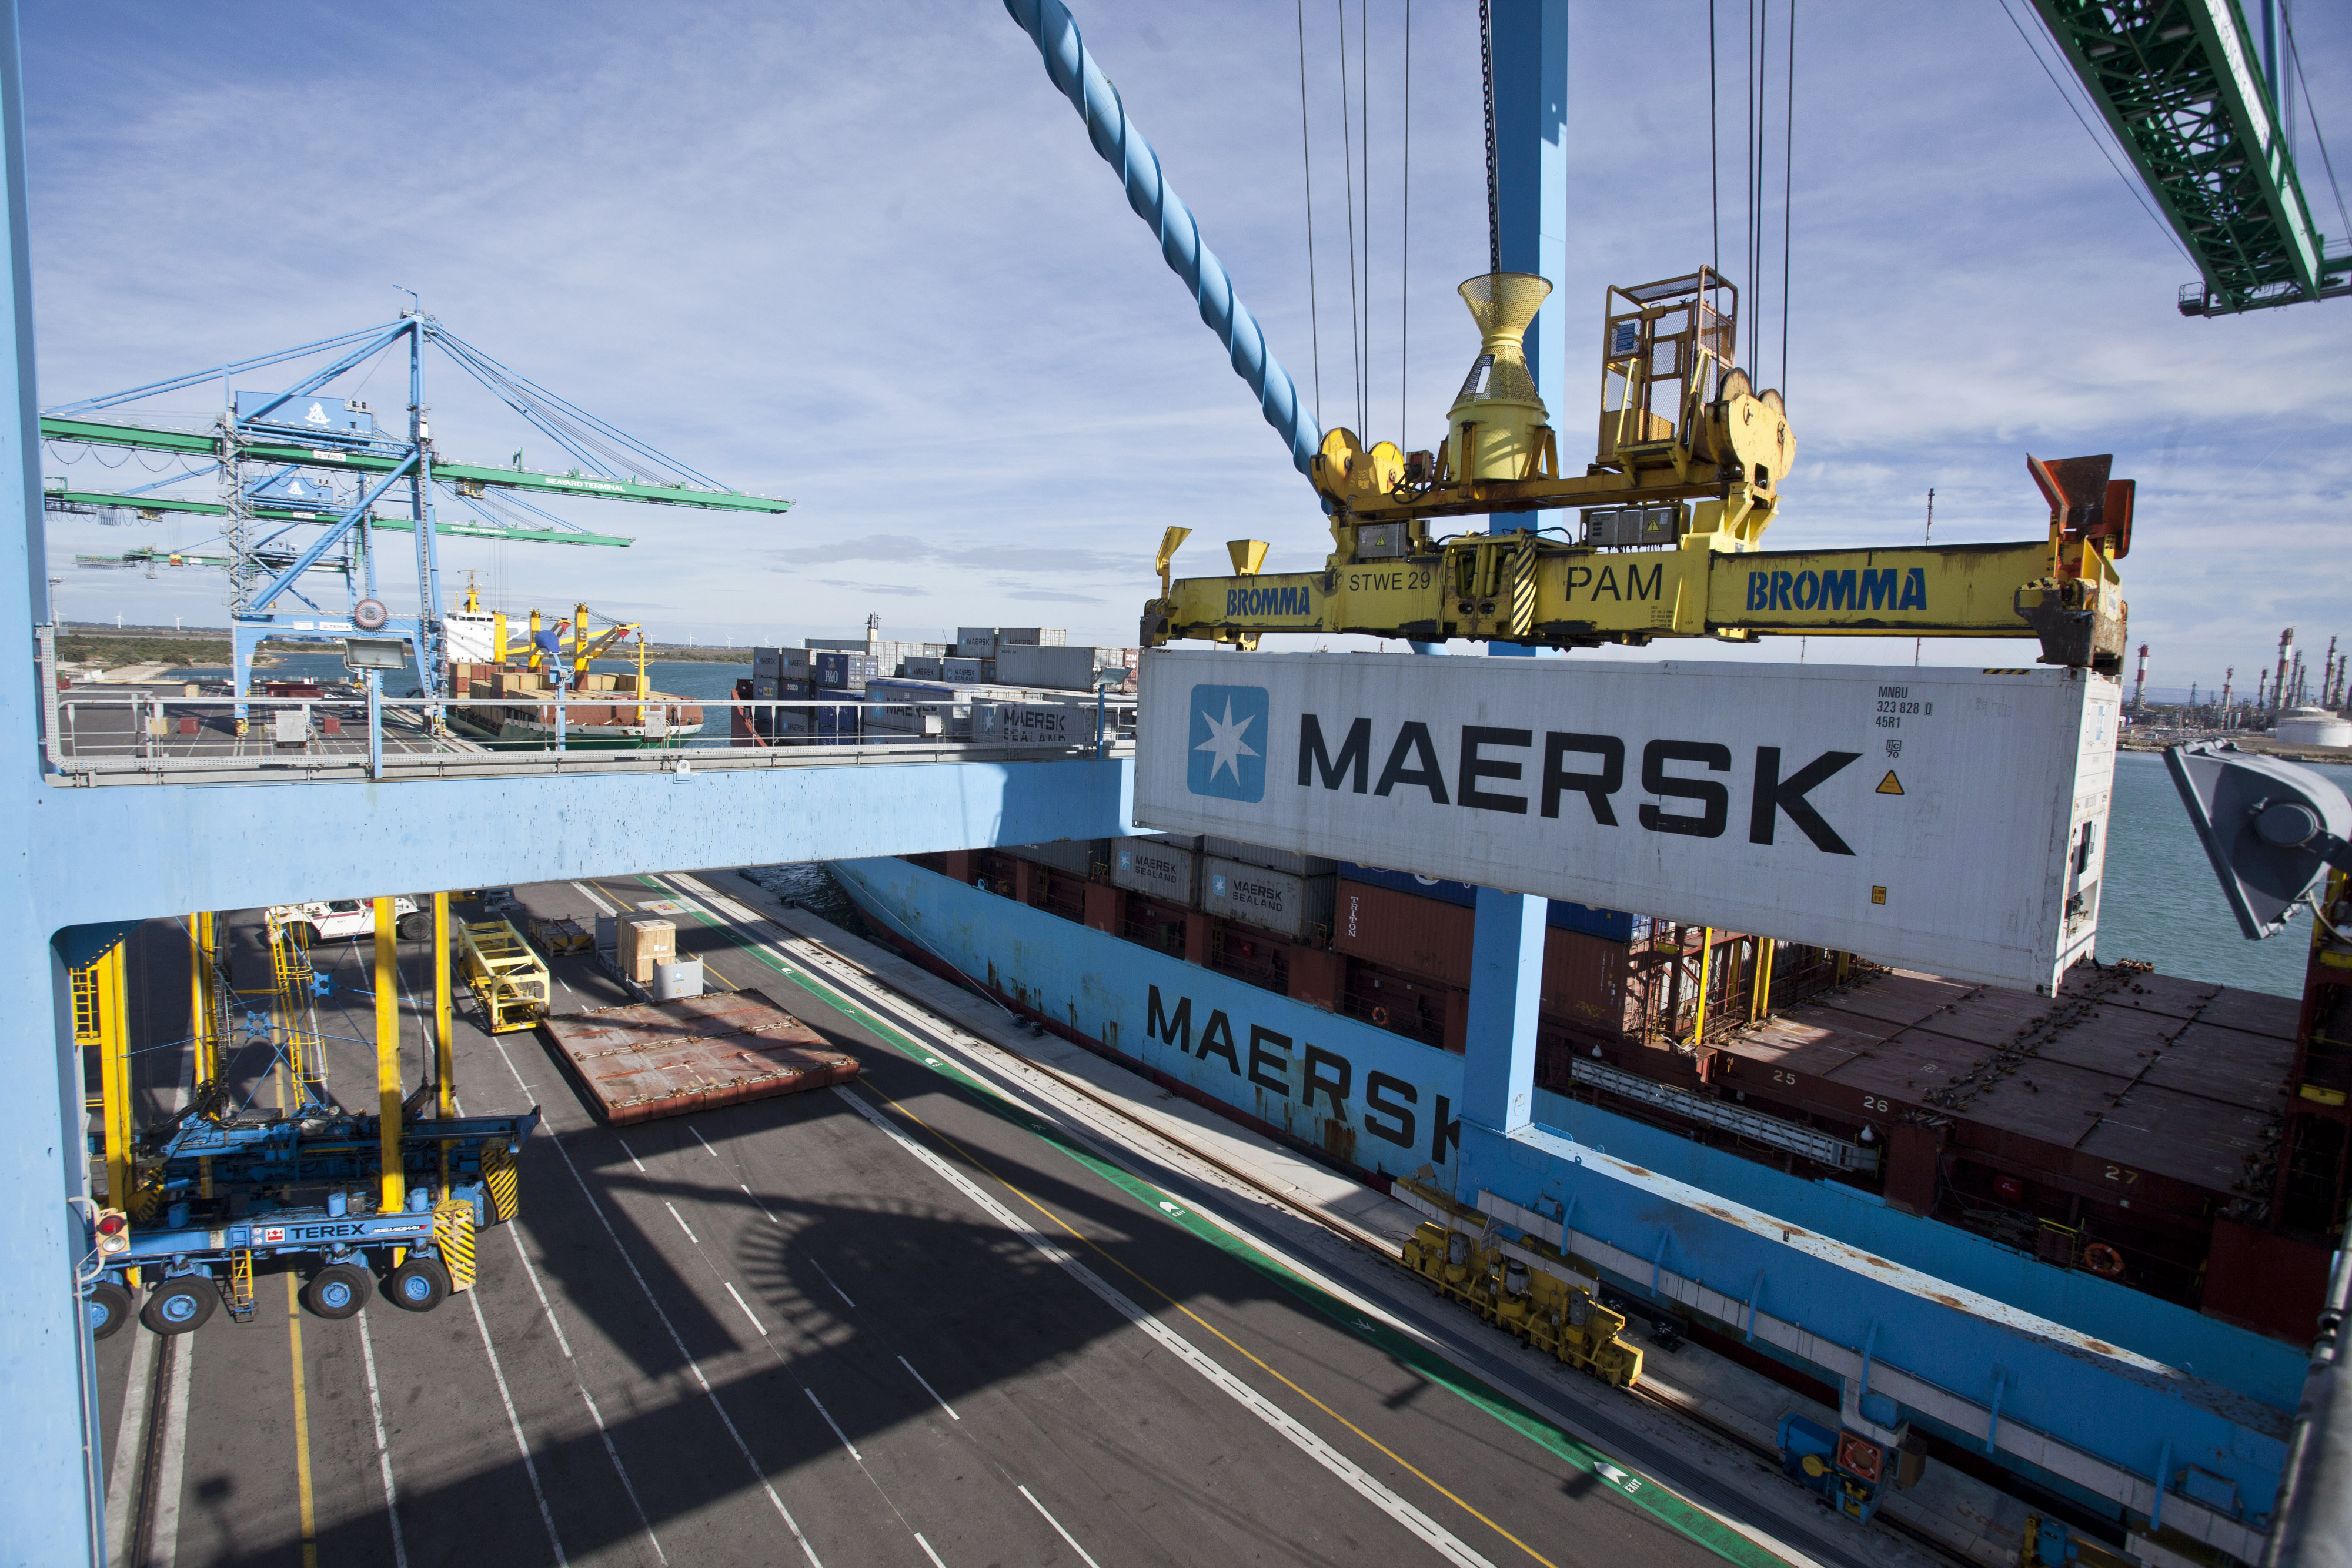 Maersk Line goes live on NYSHEX with TPEB offers